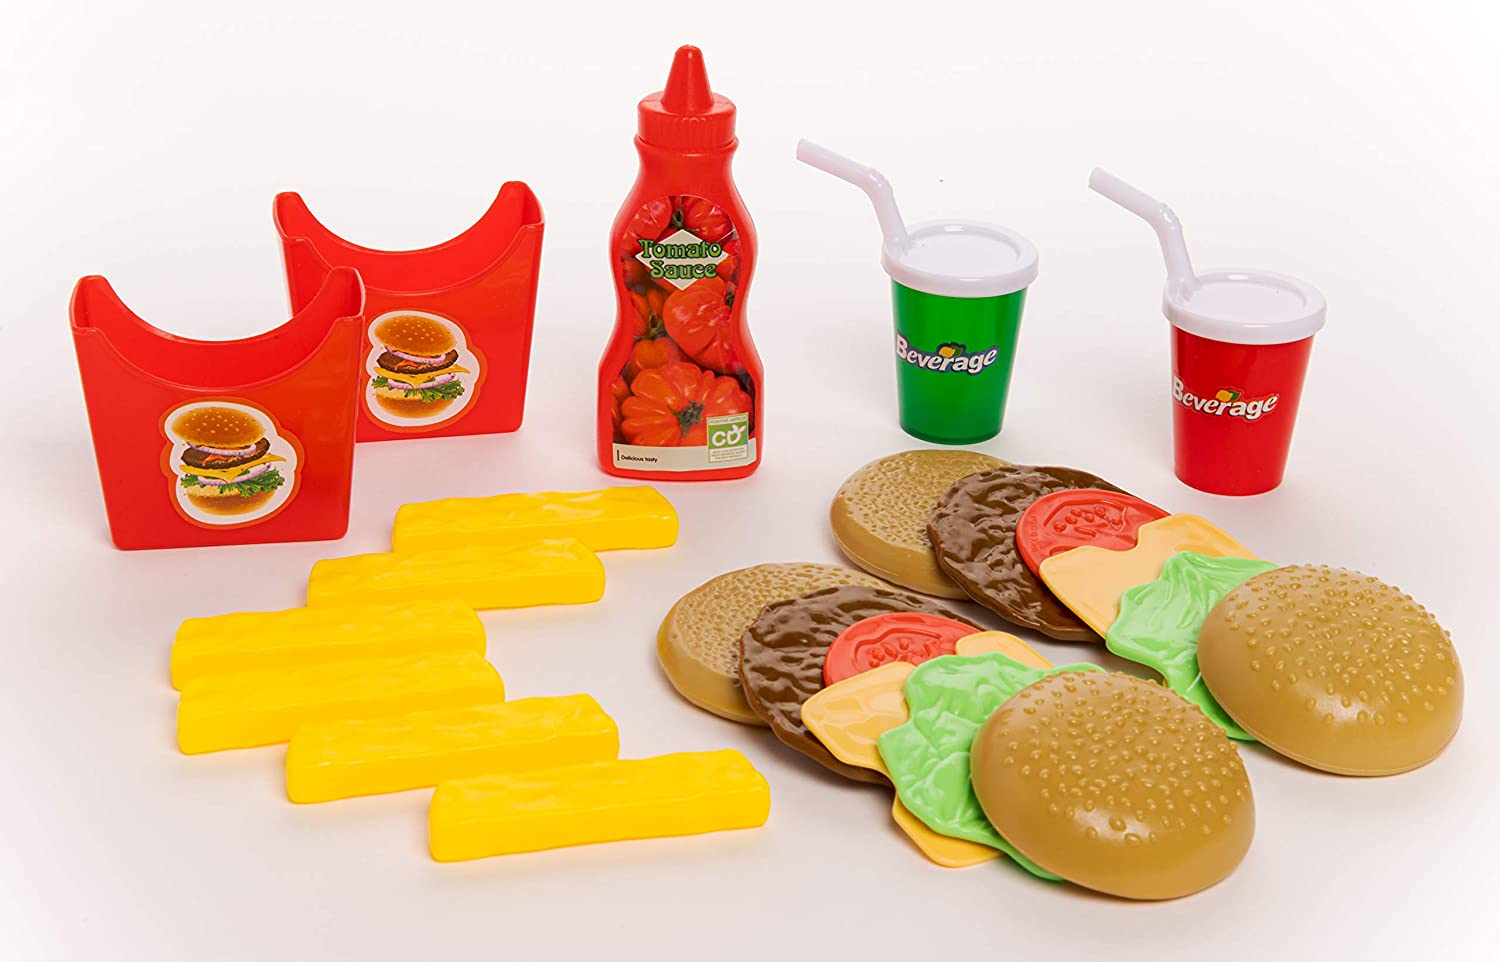 Toy Chef Fast Food Meal Playset, Pretend Play Burger, Fries, Soda, Toy Restaurant Food, Play Kitchen Accessories for Girls and Boys